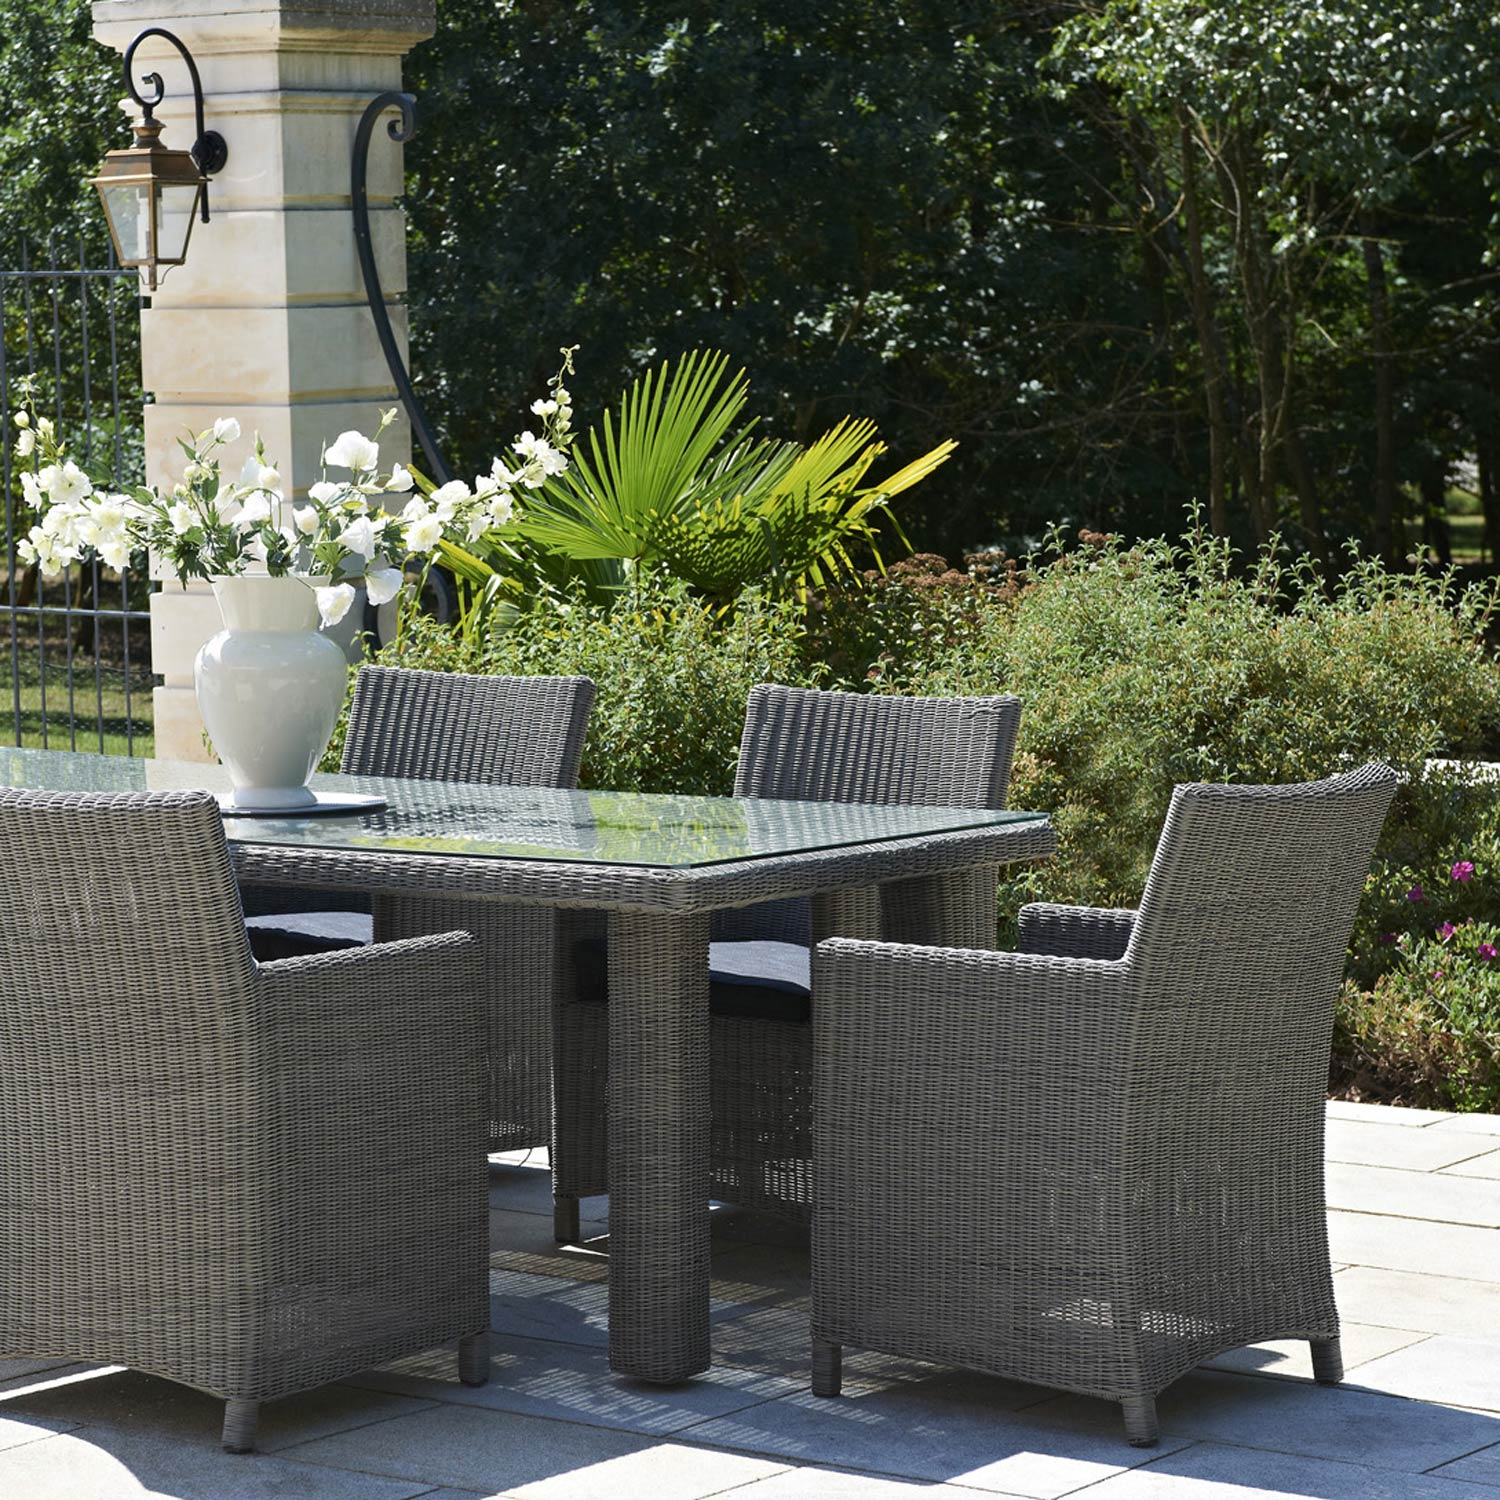 Salon de jardin Haussman PARIS GARDEN DESIGN, 1 table + 6 fauteuils